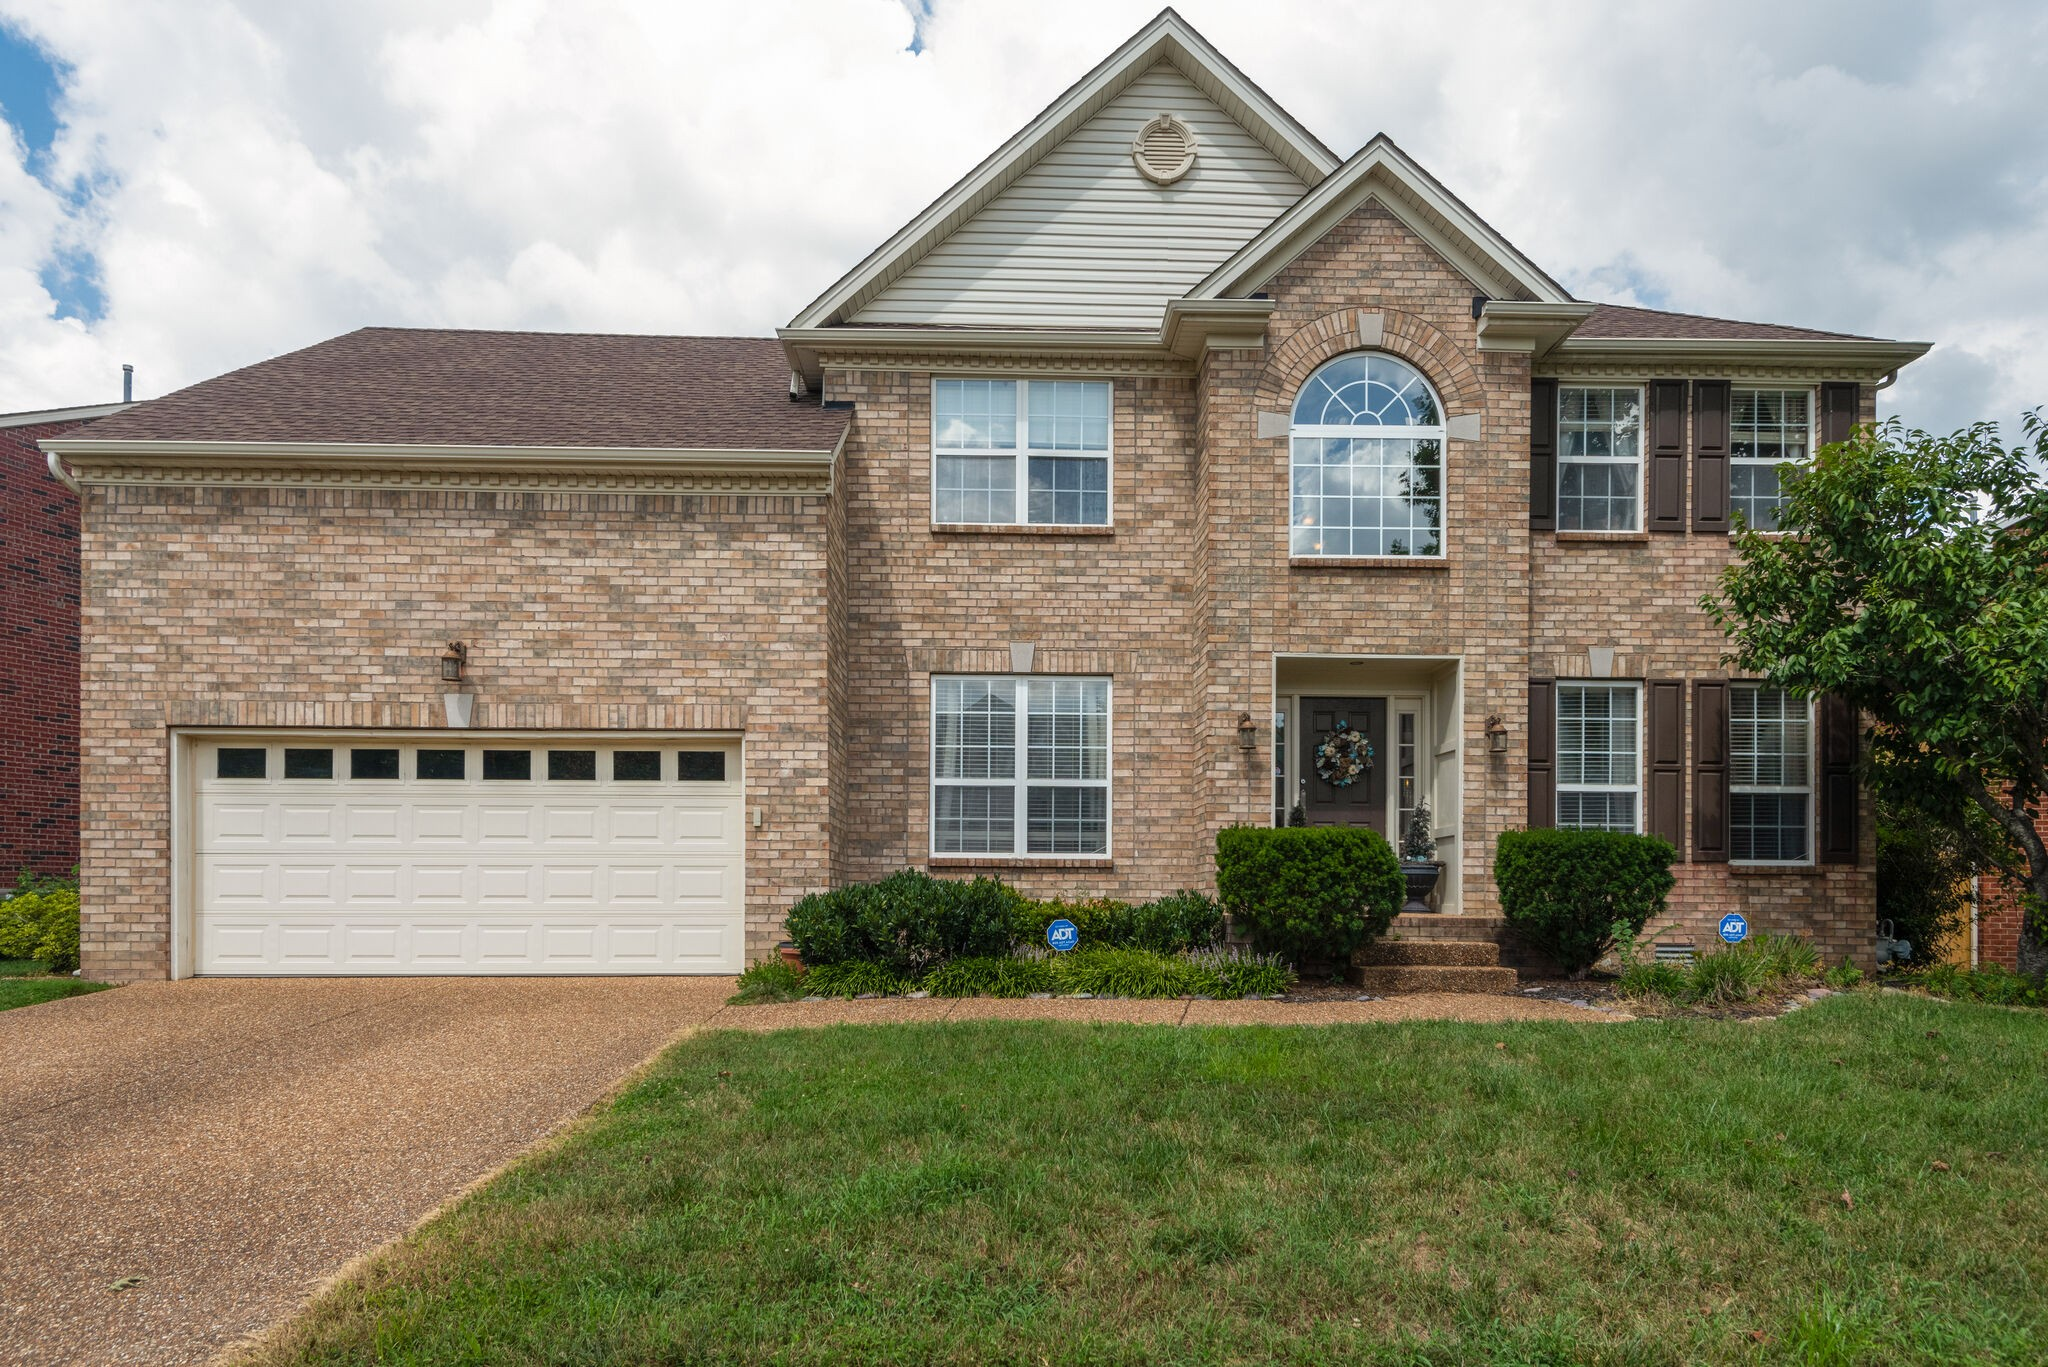 This beautiful 4-bedroom home is in highly desirable Sullivan Farms neighborhood close to downtown Franklin! Home boasts a fenced-in yard, office with French doors with all bedrooms upstairs AND a large bonus room! Updated bathrooms including a beautifully updated Master bath!